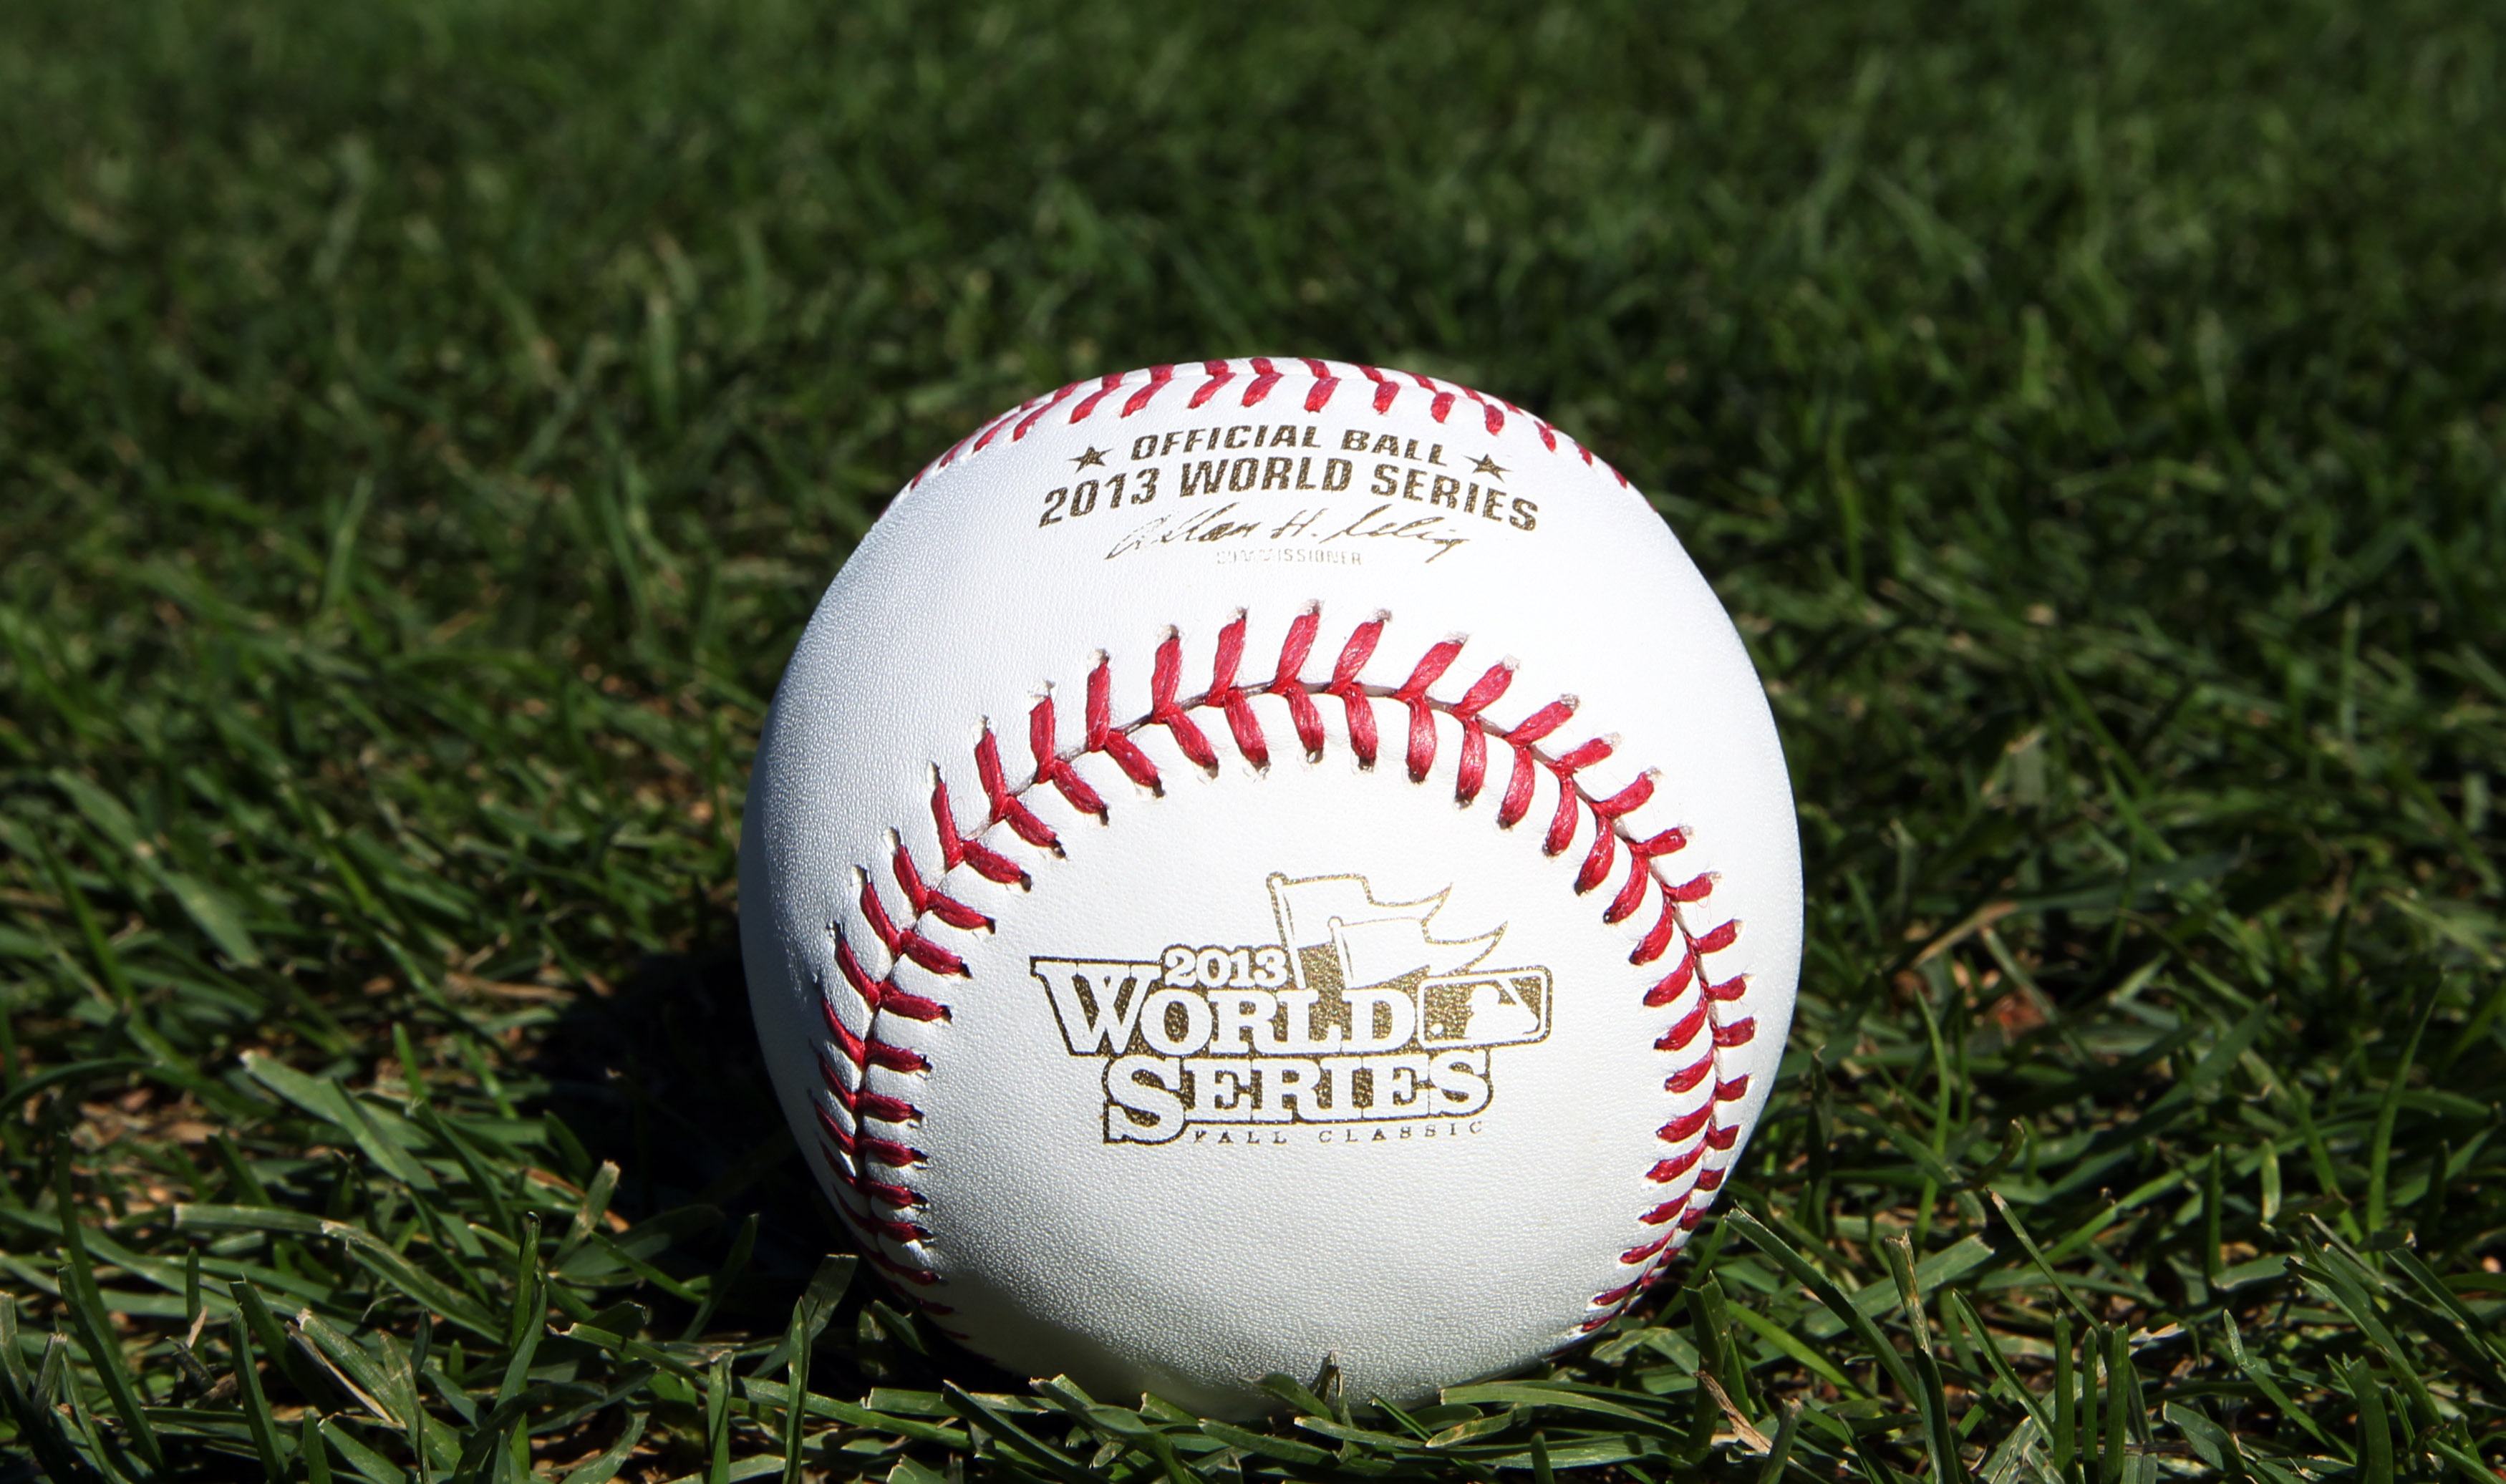 Rawlings Sporting Goods Company releases 2013 World Series baseball